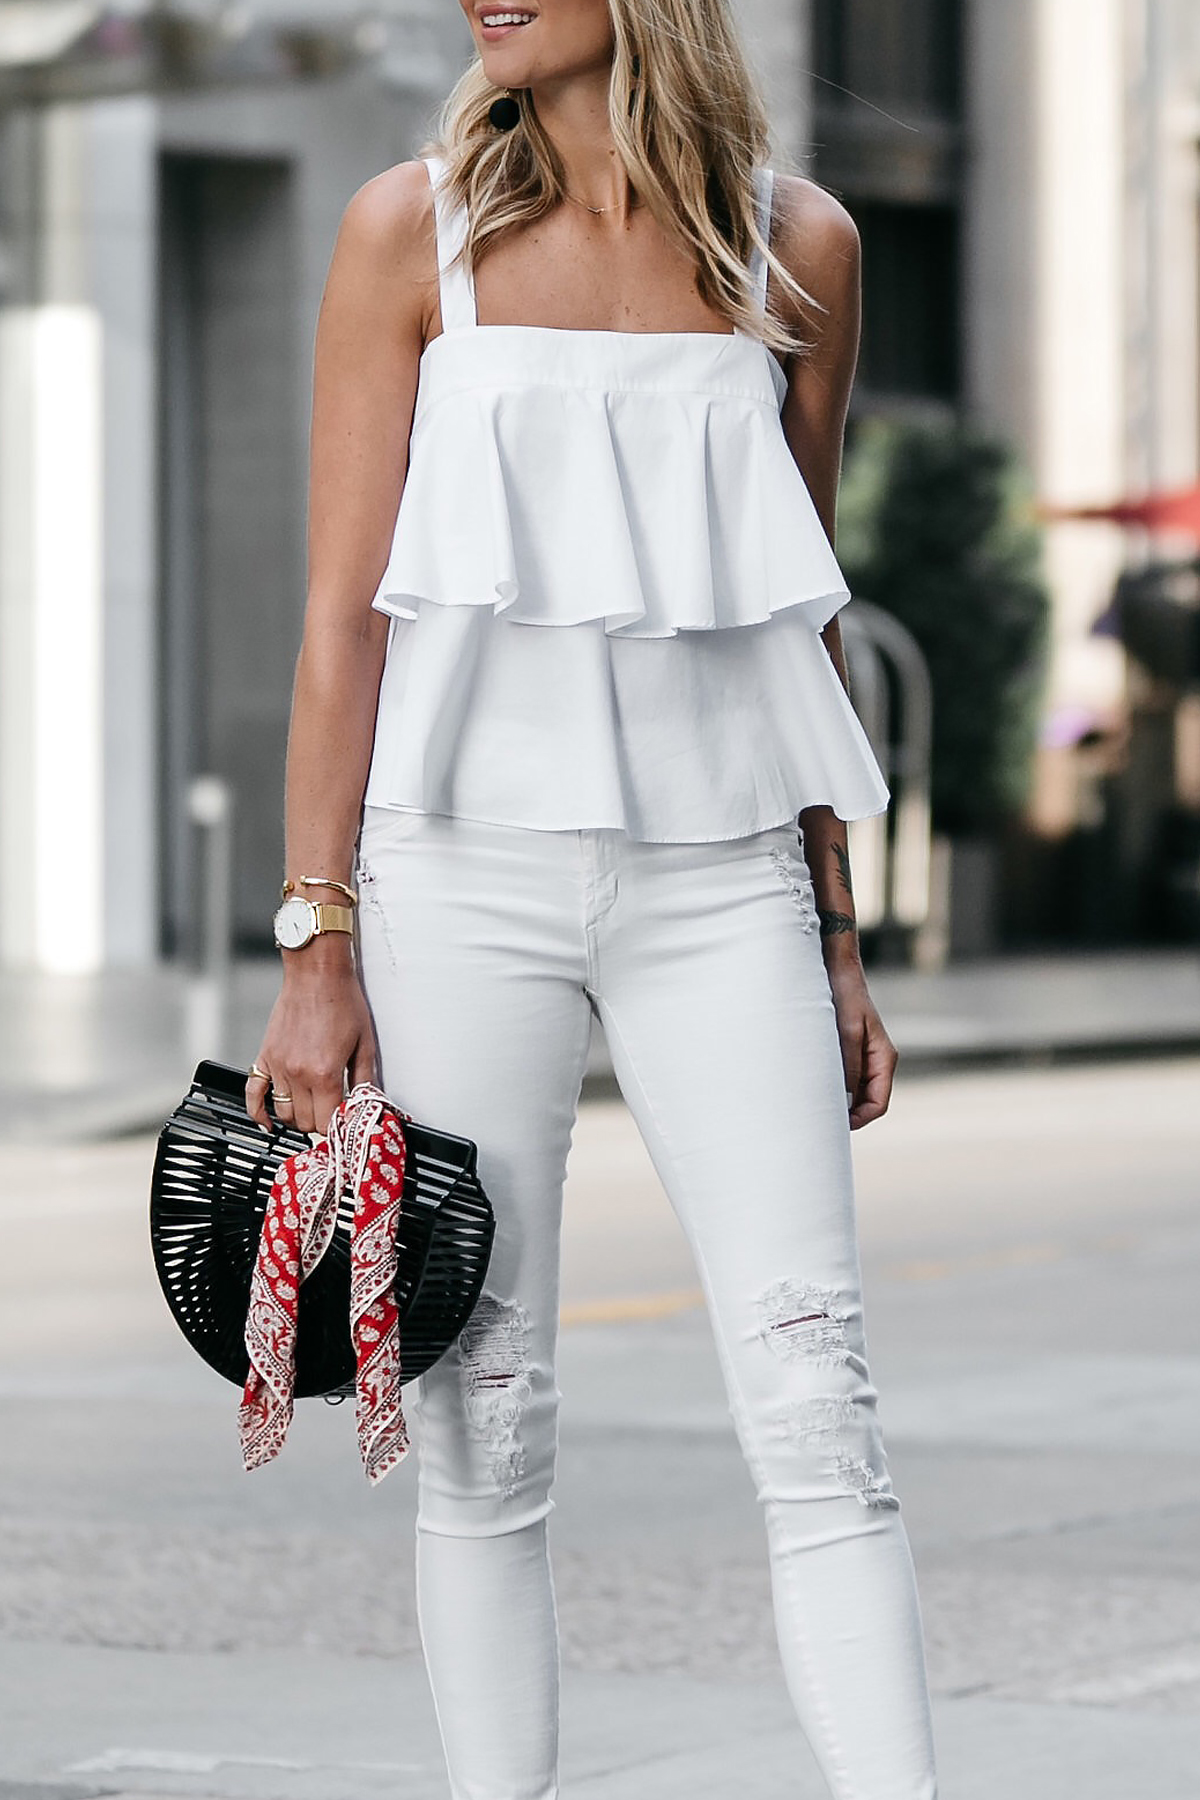 Nordstrom White Ruffle Tank White Ripped Skinny Jeans Outfit Cult Gaia Black Acrylic Clutch Red Bandana Fashion Jackson Dallas Blogger Fashion Blogger Street Style